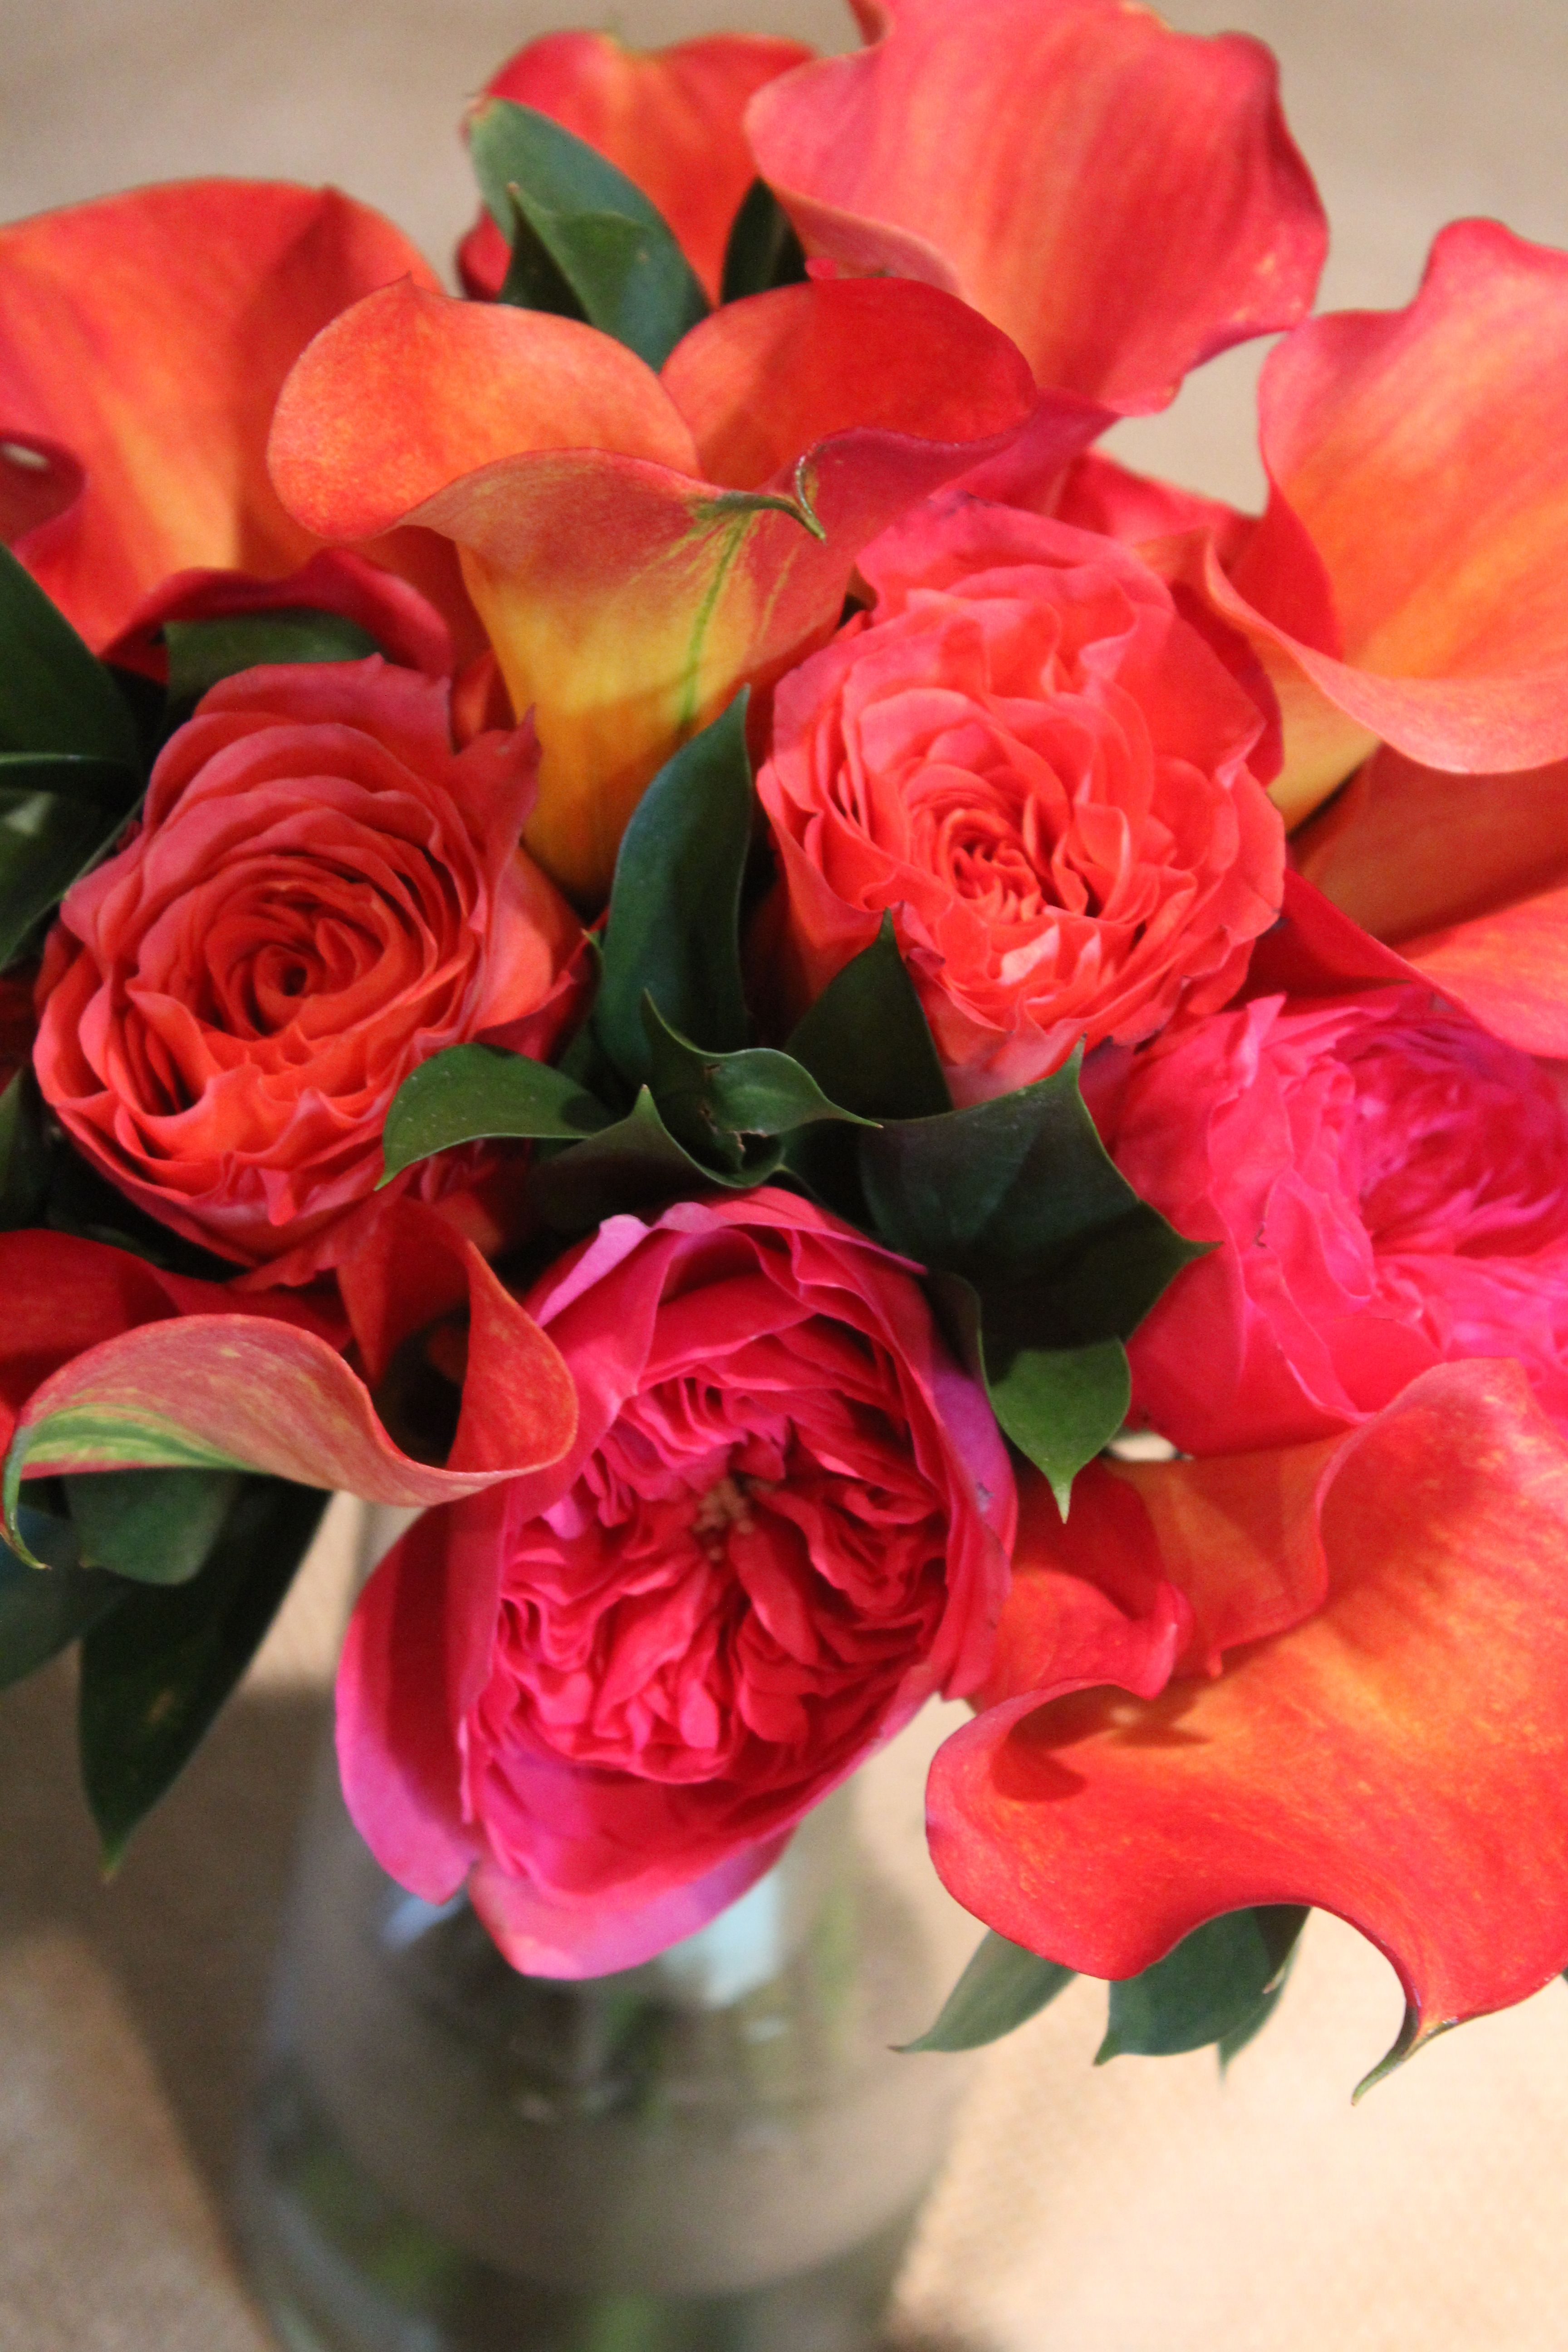 For a bride who wants a beautifully bright bouquet from Twigs in Greenville, SC